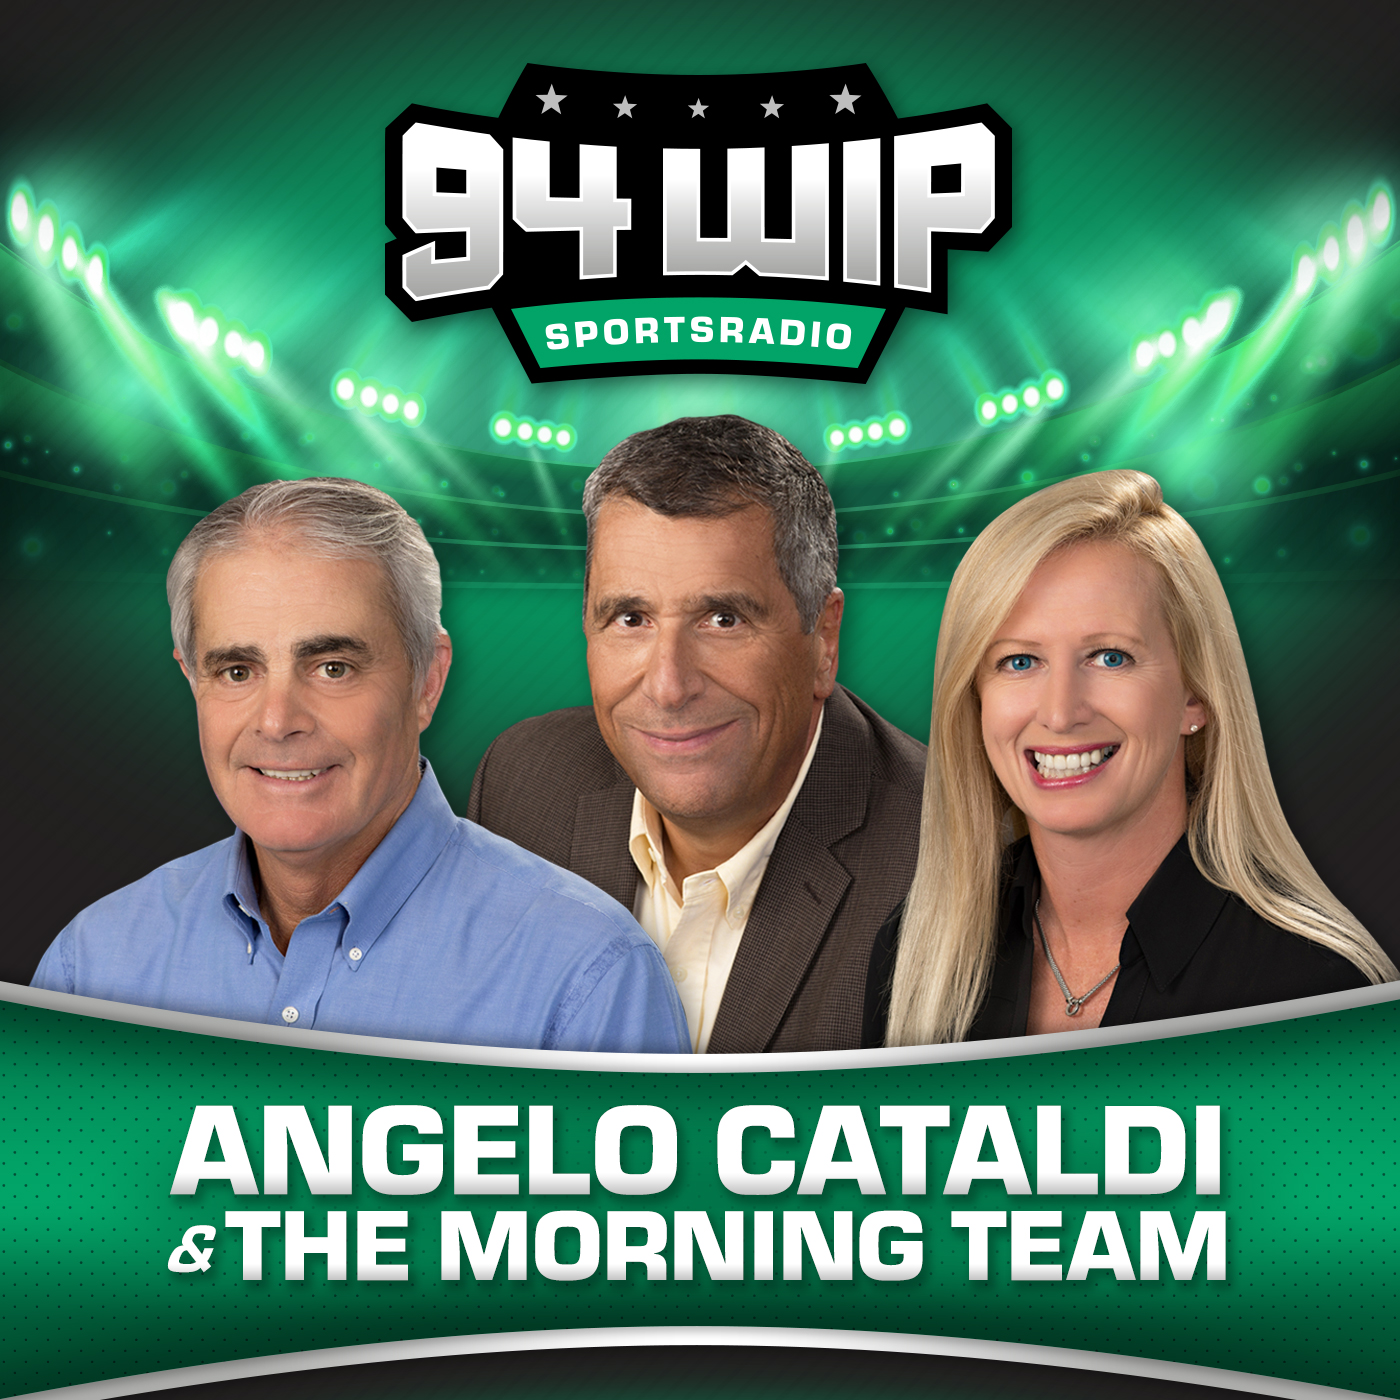 Angelo Cataldi And The Morning Team